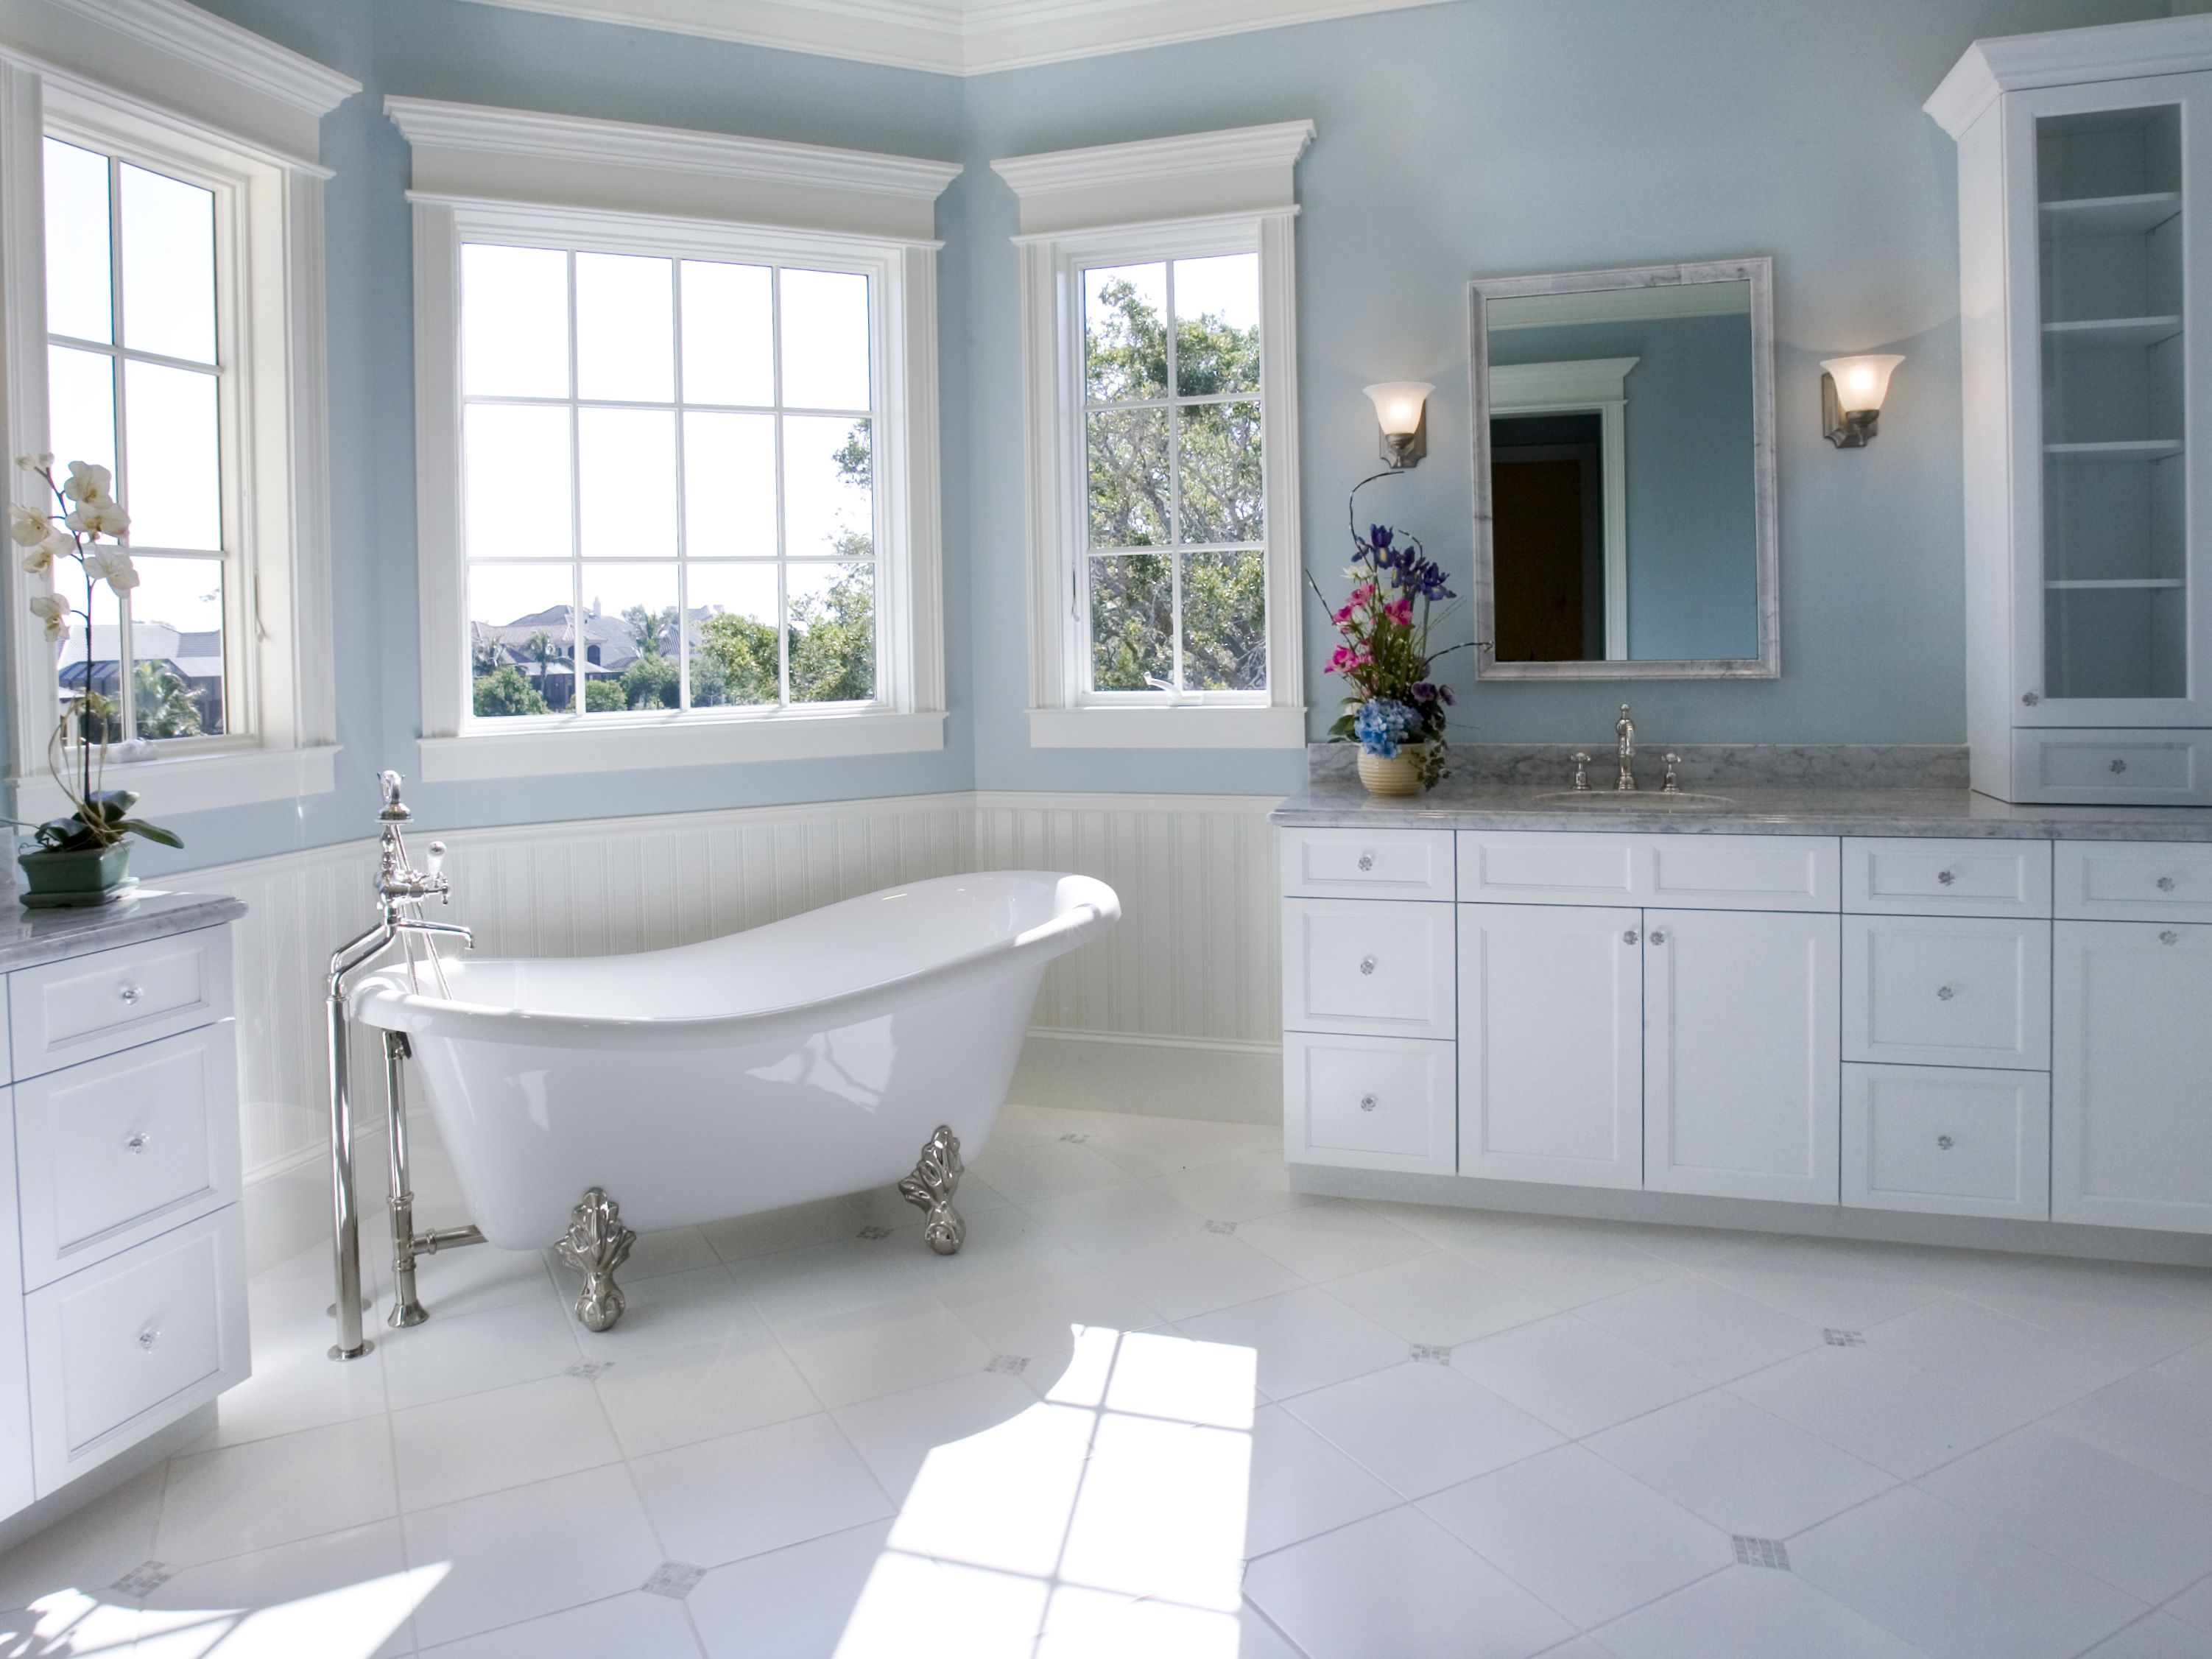 5 Great Budget Friendly Bathroom Flooring Options